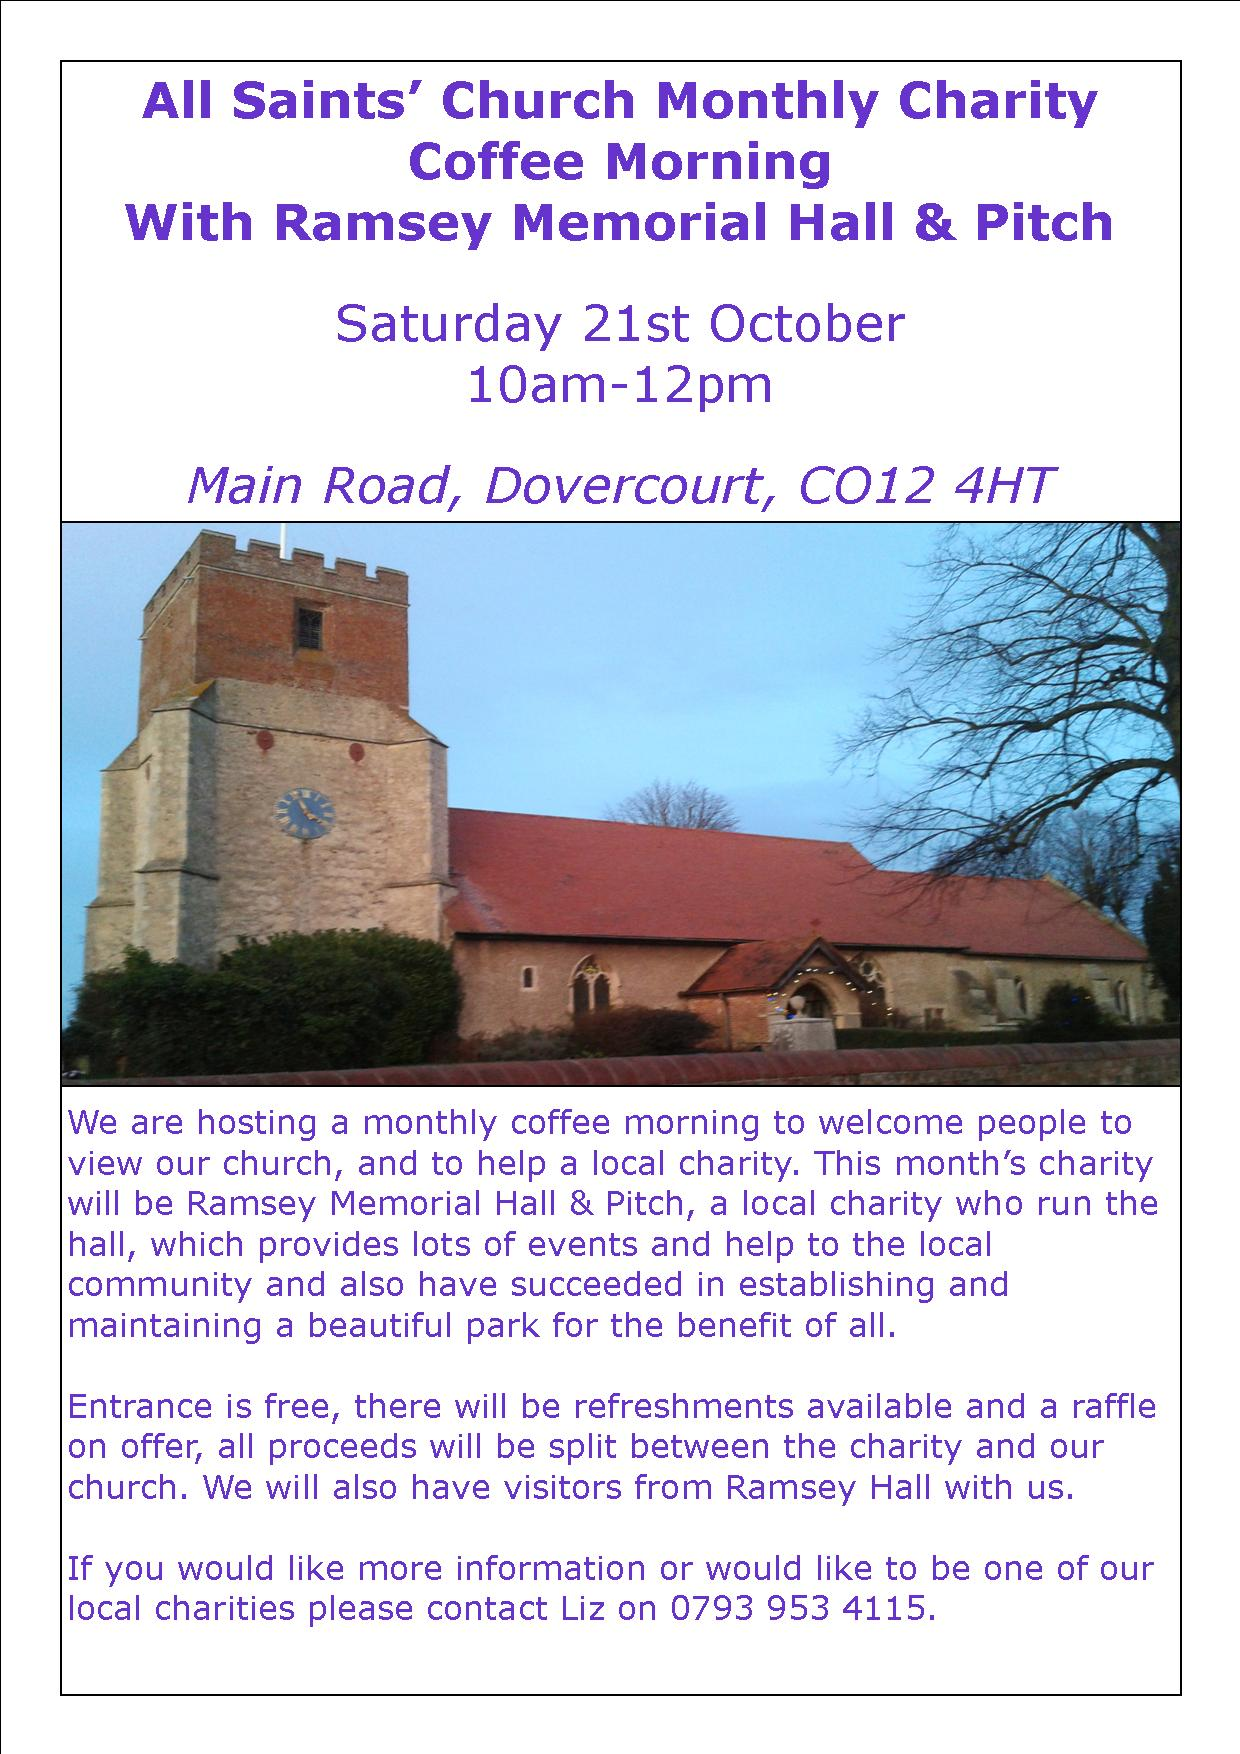 All Saints' Church Monthly Coffee Morning